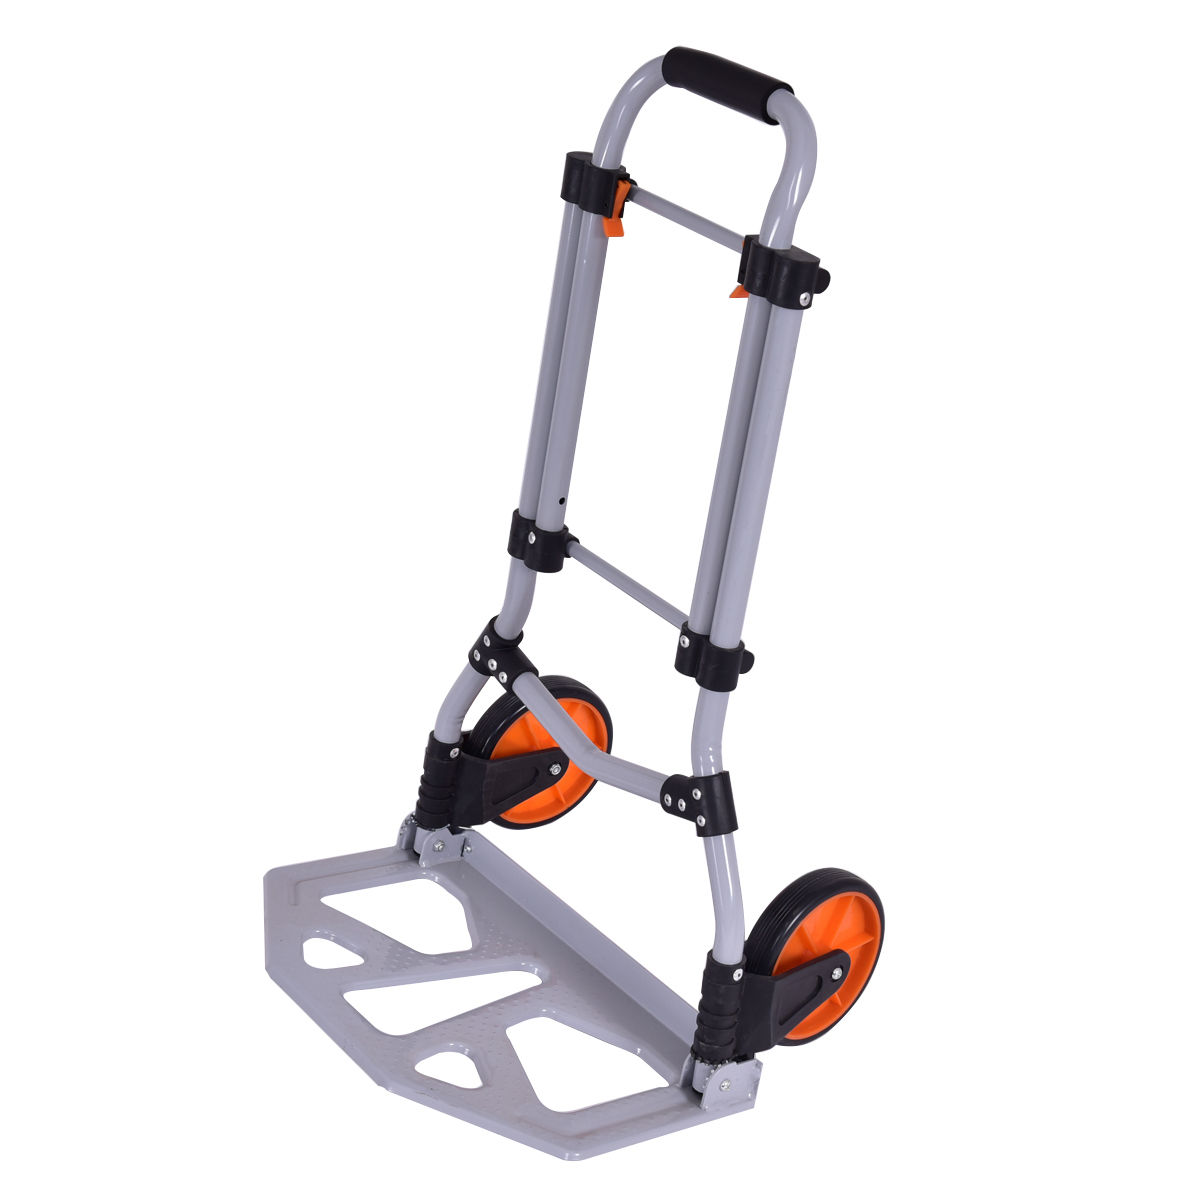 Costway Folding Dolly Hand Truck Cart Collapsible Push Trolley Luggage 150 LB Capacity by Costway